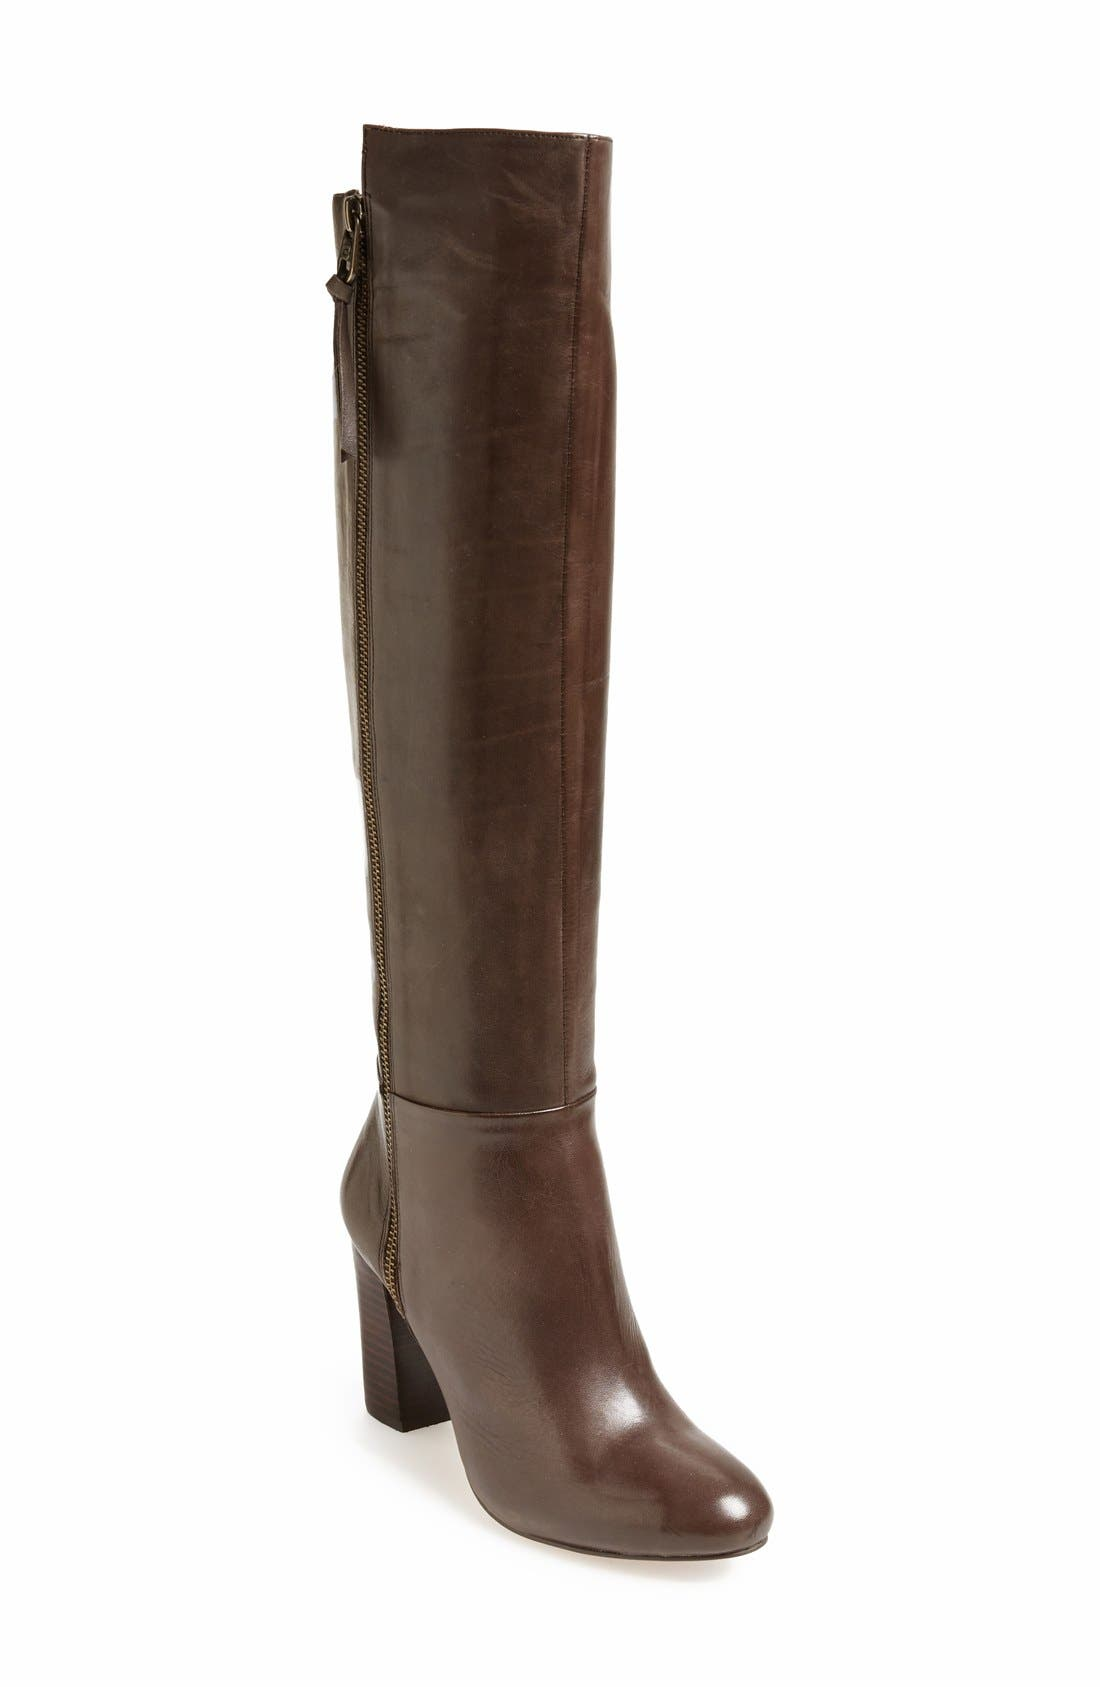 Main Image - Elliott Lucca 'Delanna' Leather Boot (Women)